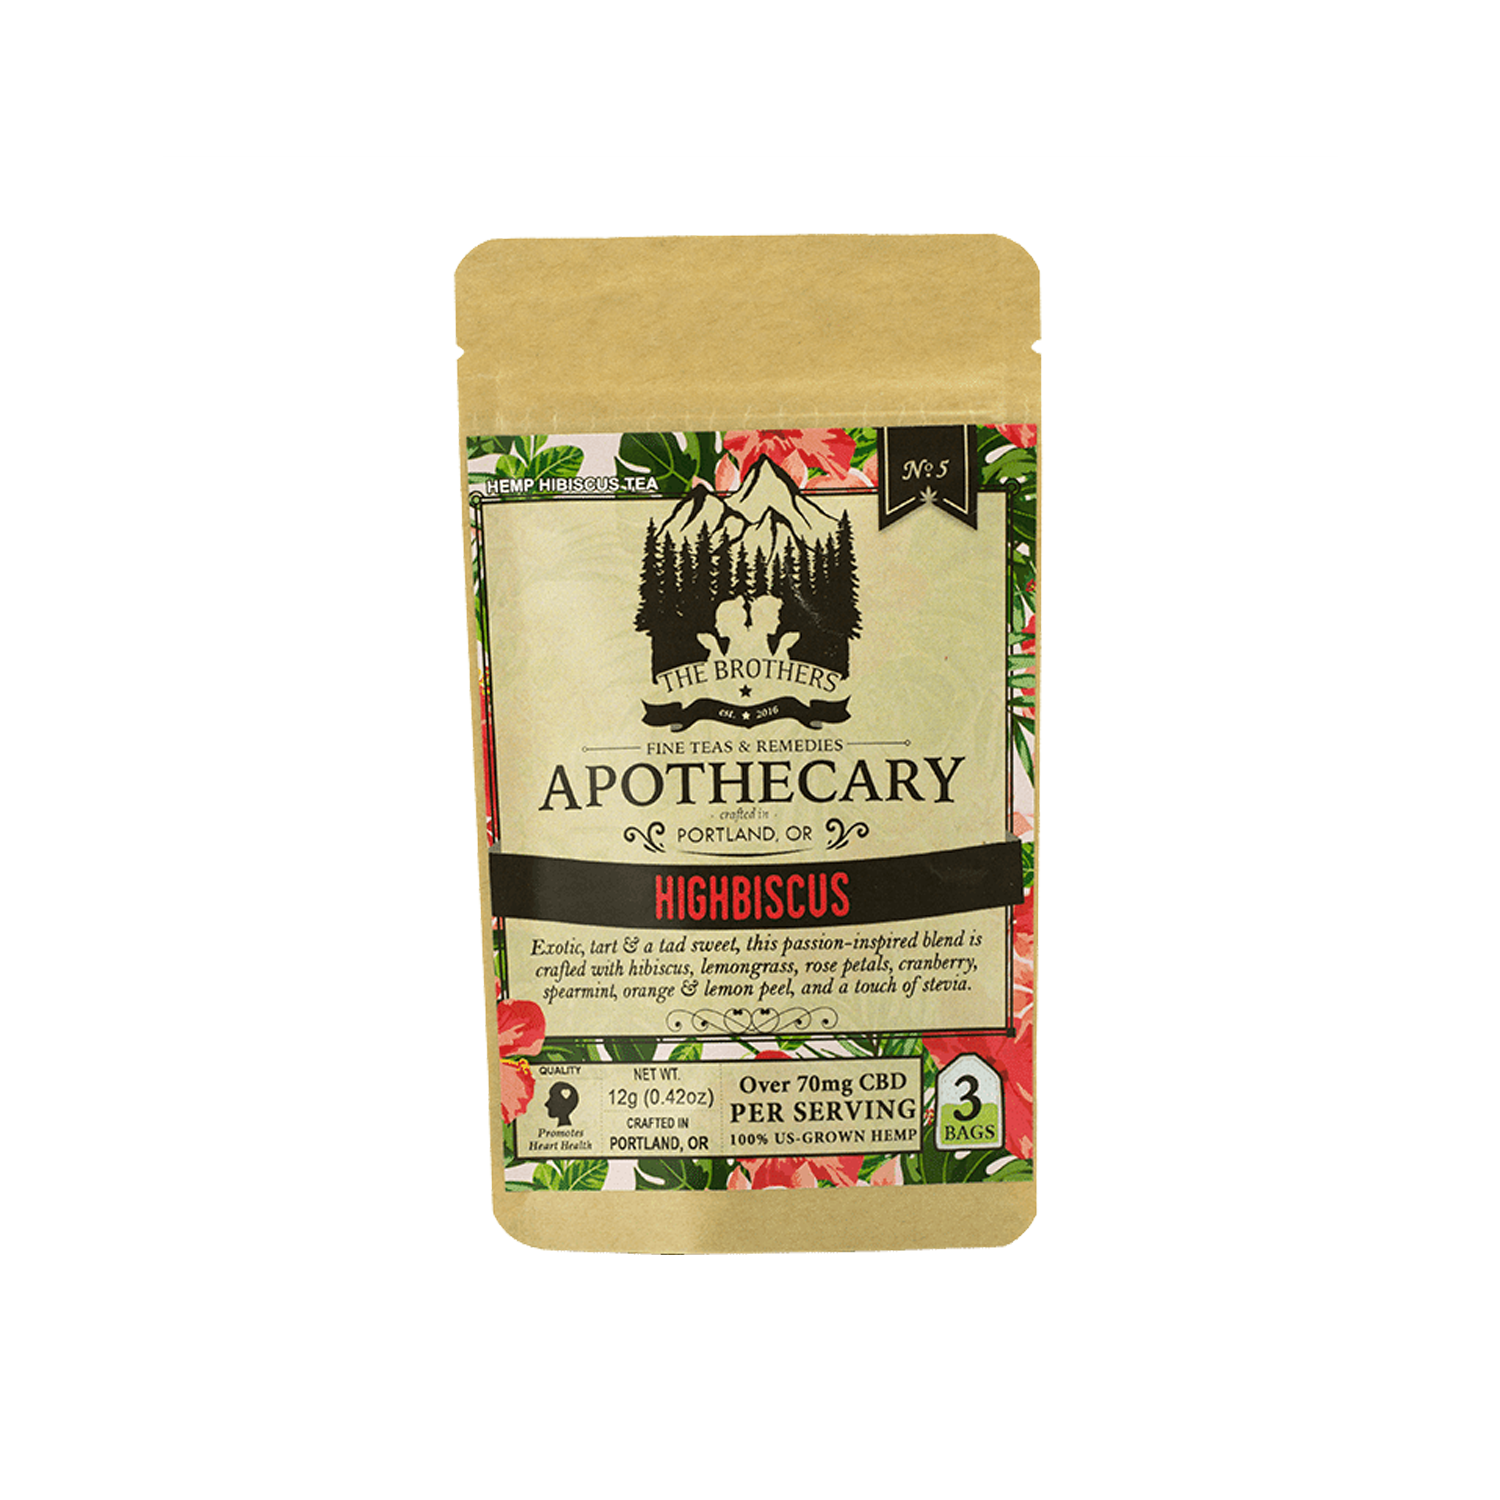 The Brothers Apothecary Teas